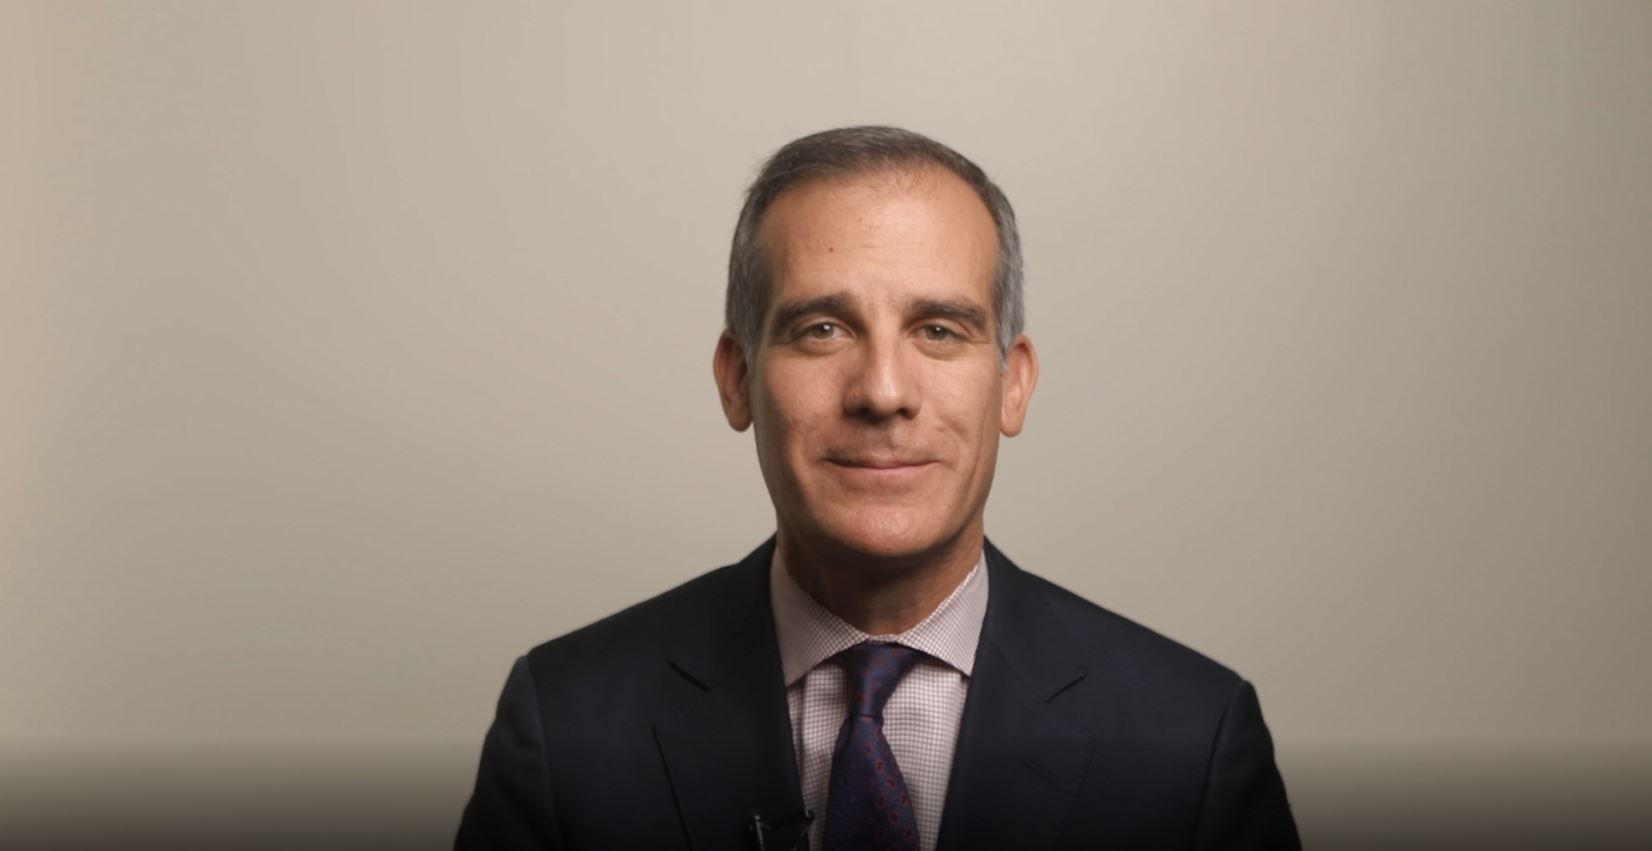 Los Angeles Mayor Eric Garcetti Congratulates West Basin on the Re-Opening of the ECLWRF Water Education Center